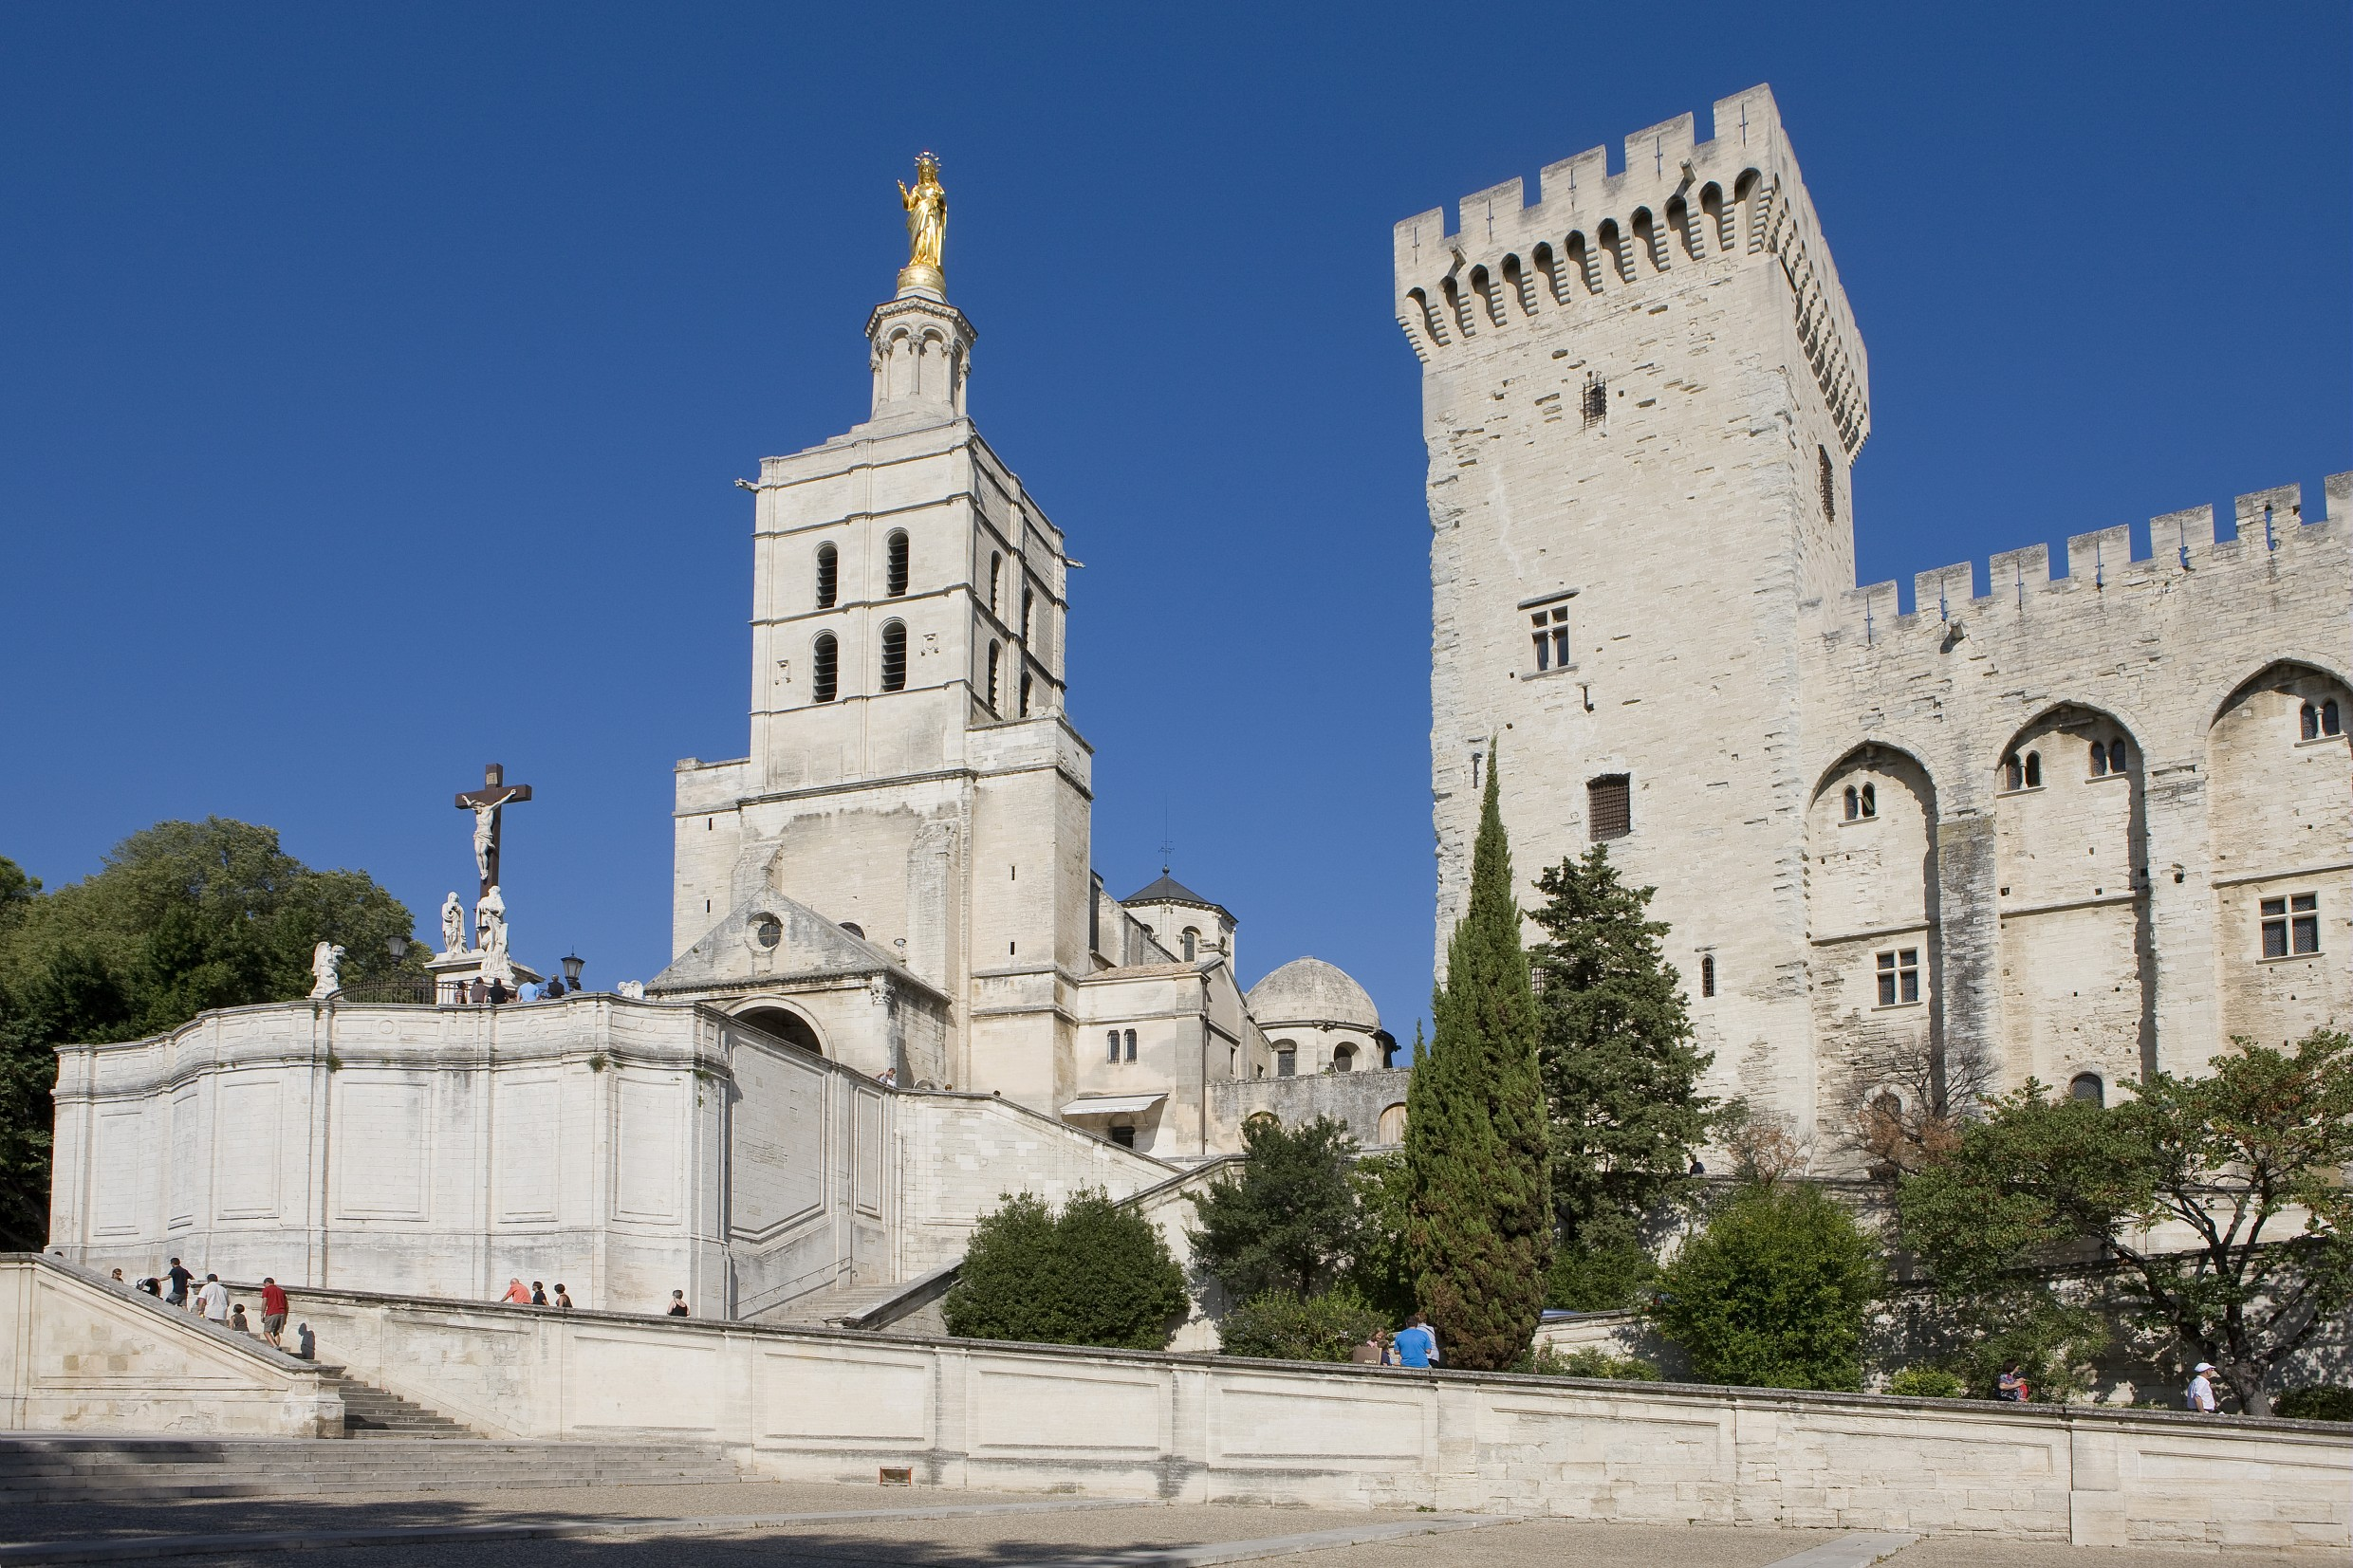 Palace of the Popes, Avignon, France © Christophe Grilhé